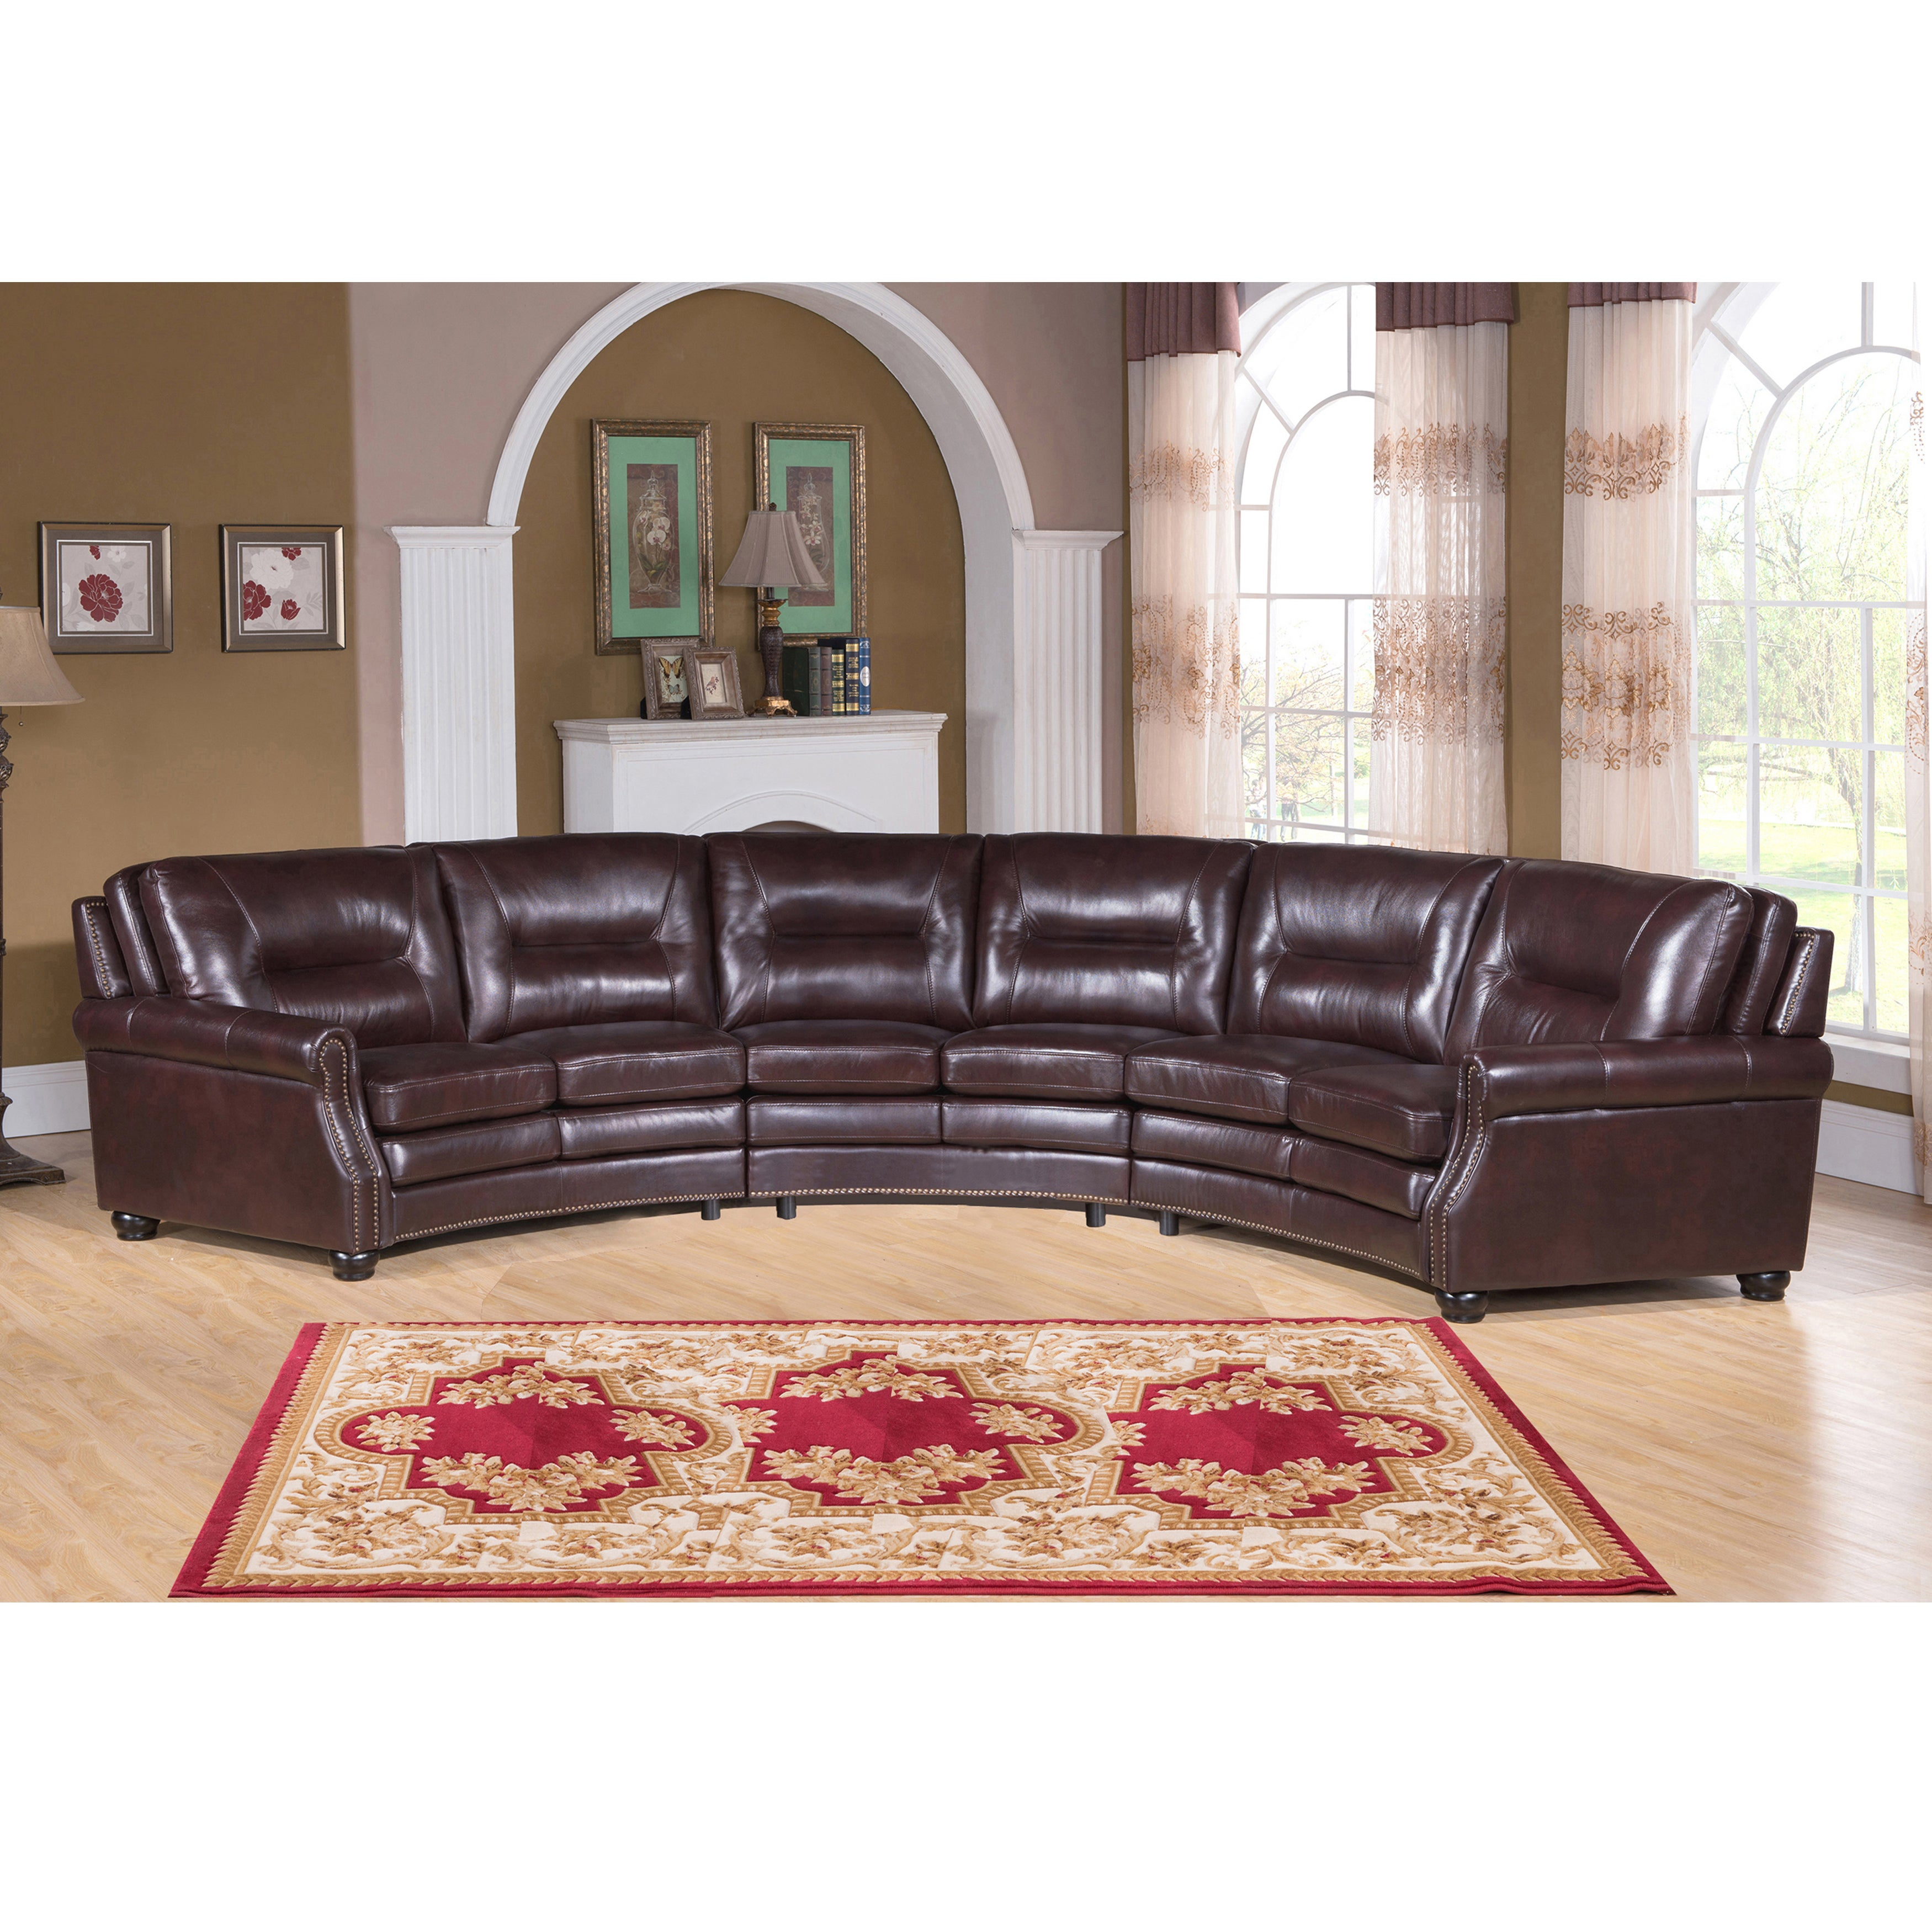 New Traditional Venice Chocolate Brown Curved Top Grain Leather Sectional  Sofa!